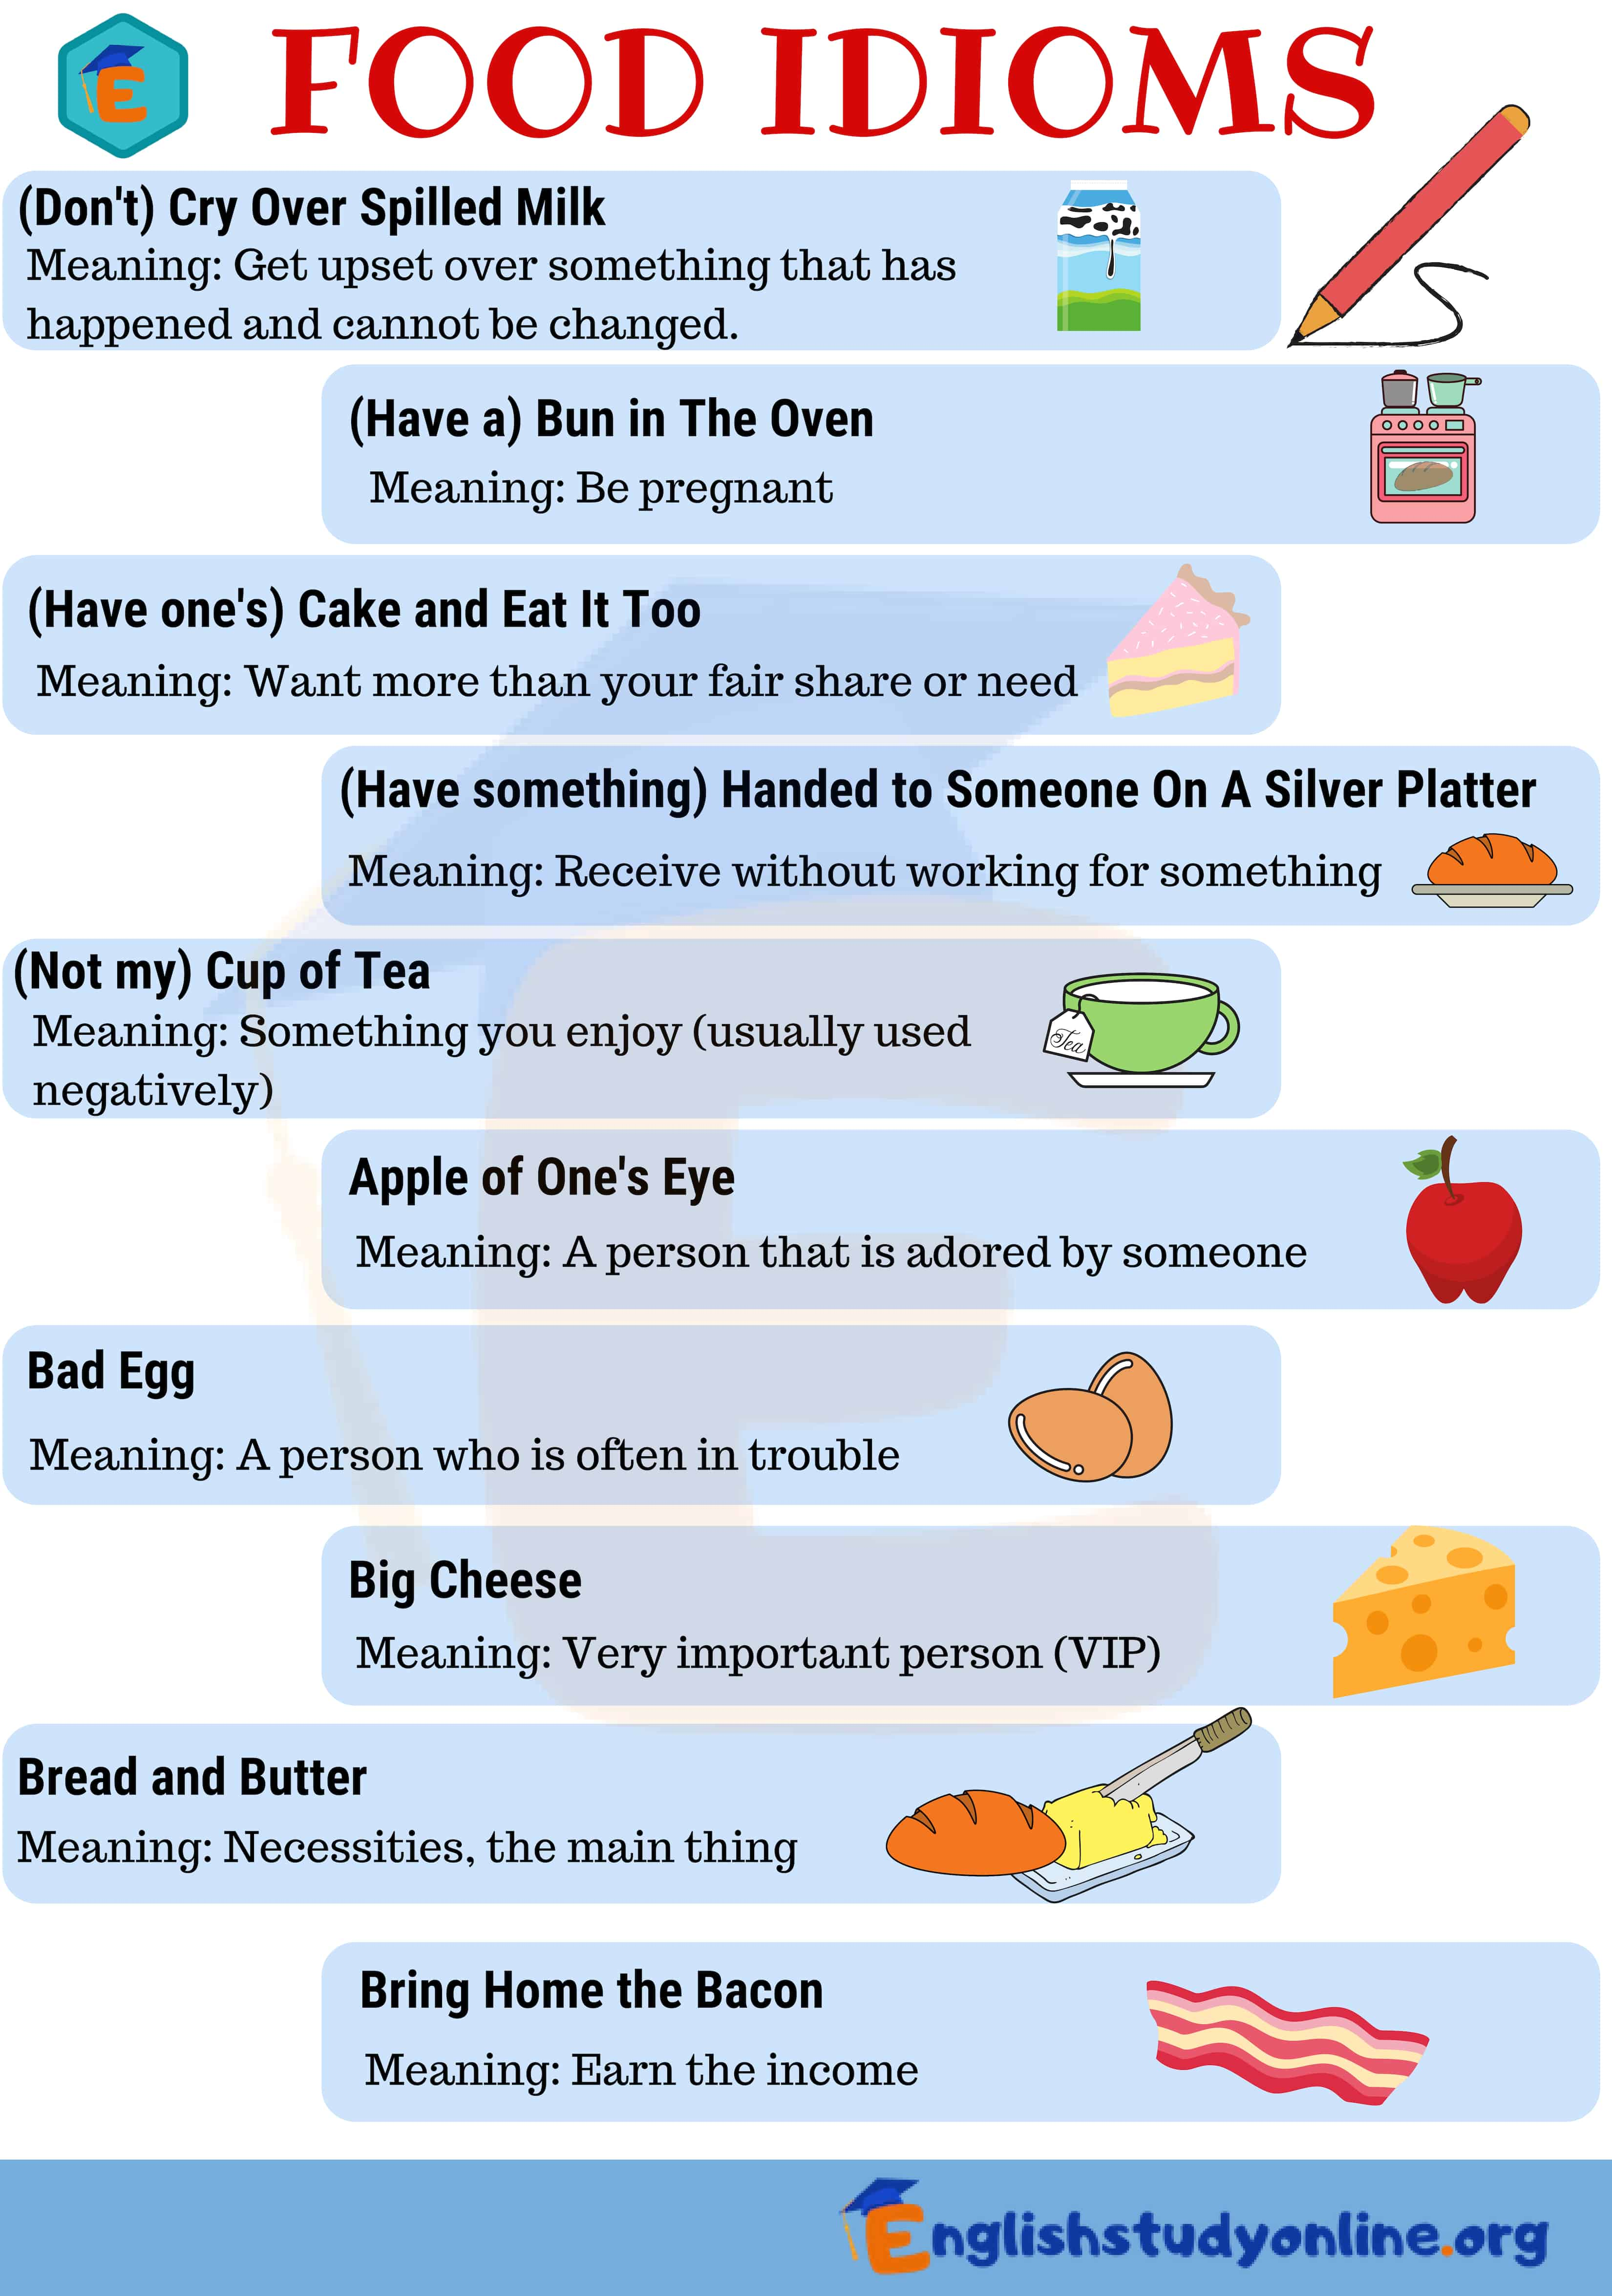 Cuisine Meaning English 35 Frequently Used Food Idioms With Meaning English